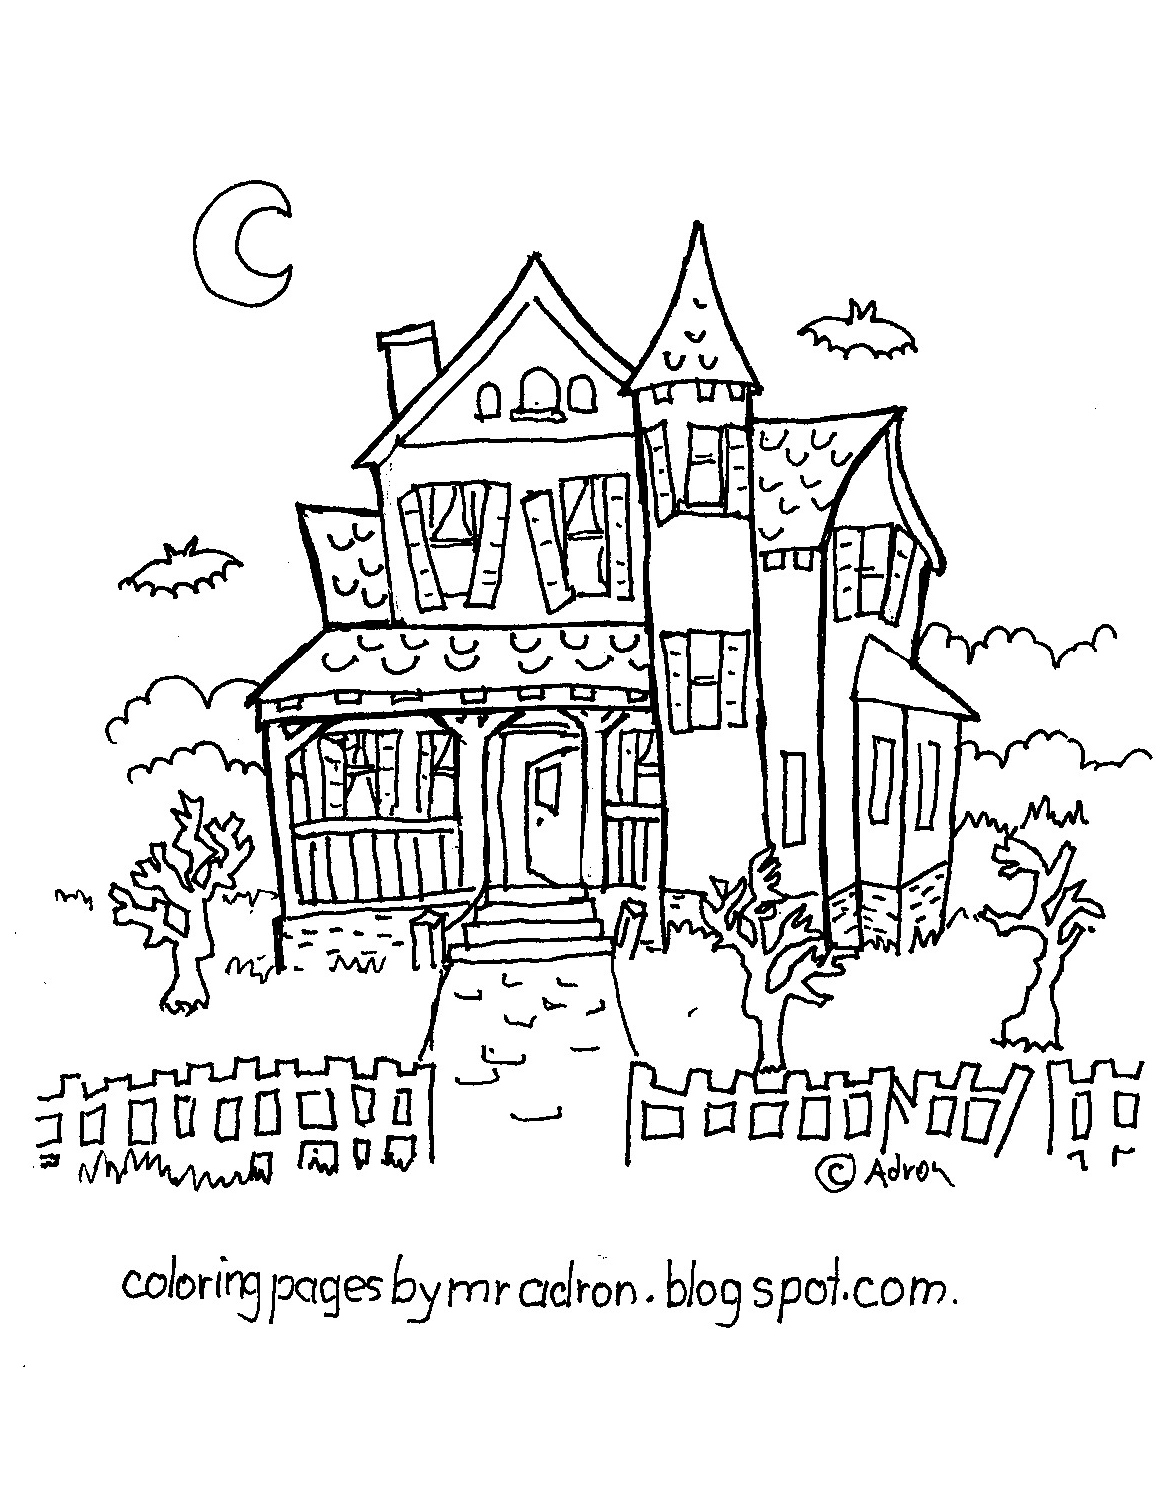 coloring page haunted house coloring pages for kids by mr adron haunted house free haunted coloring house page